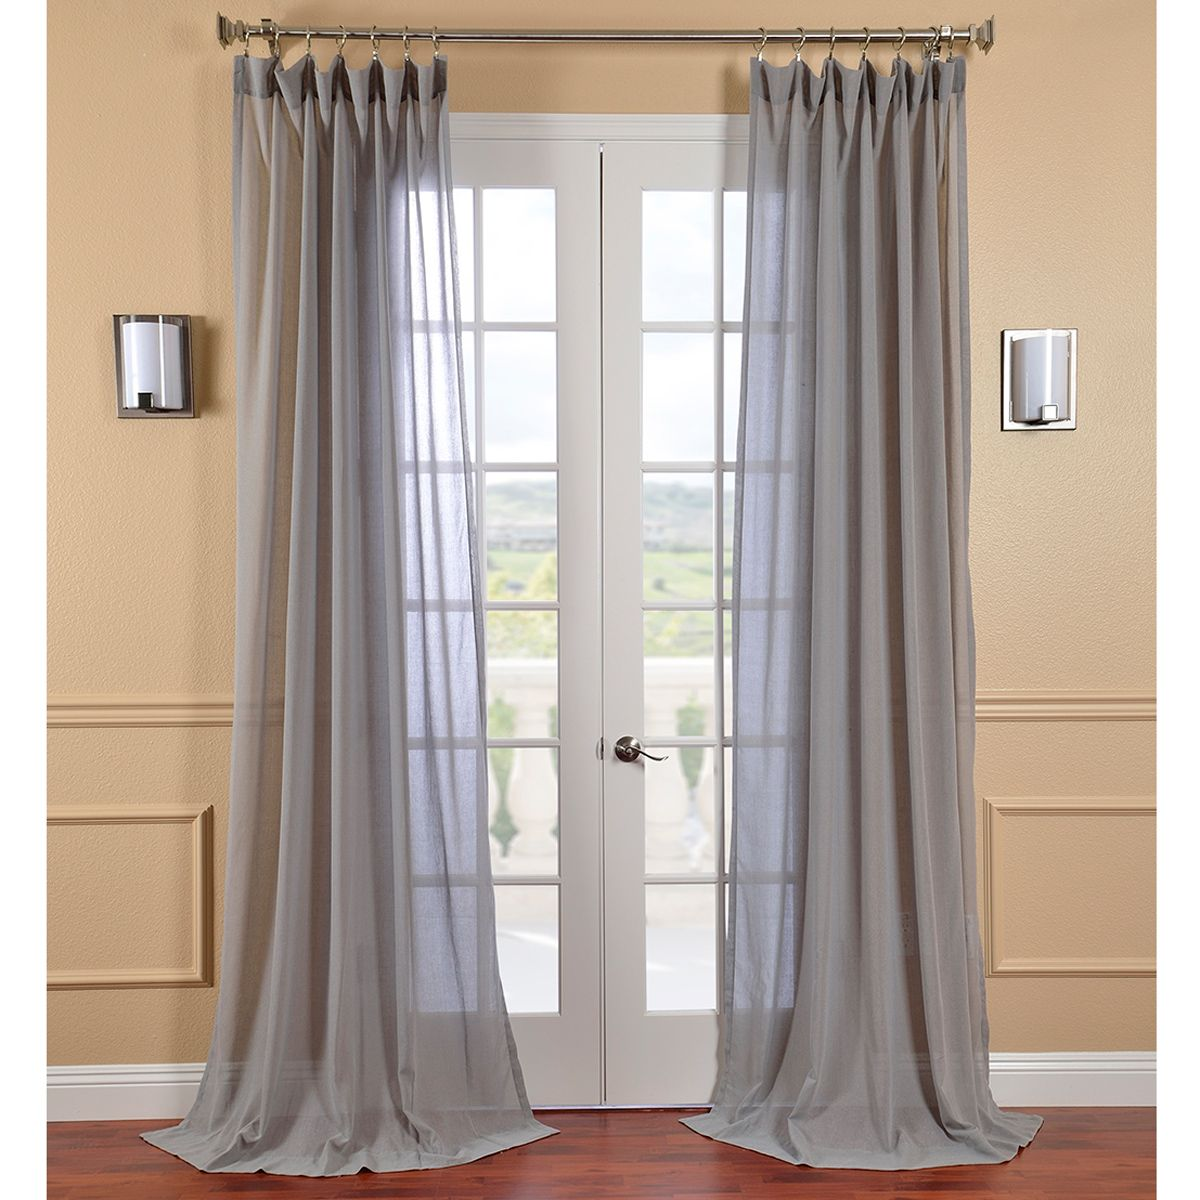 Decorate Your Windows Without Completely Blocking The Sunshine With These Sheer Panel Curtains Each Package Includes One Unlined Polyester Blend In A